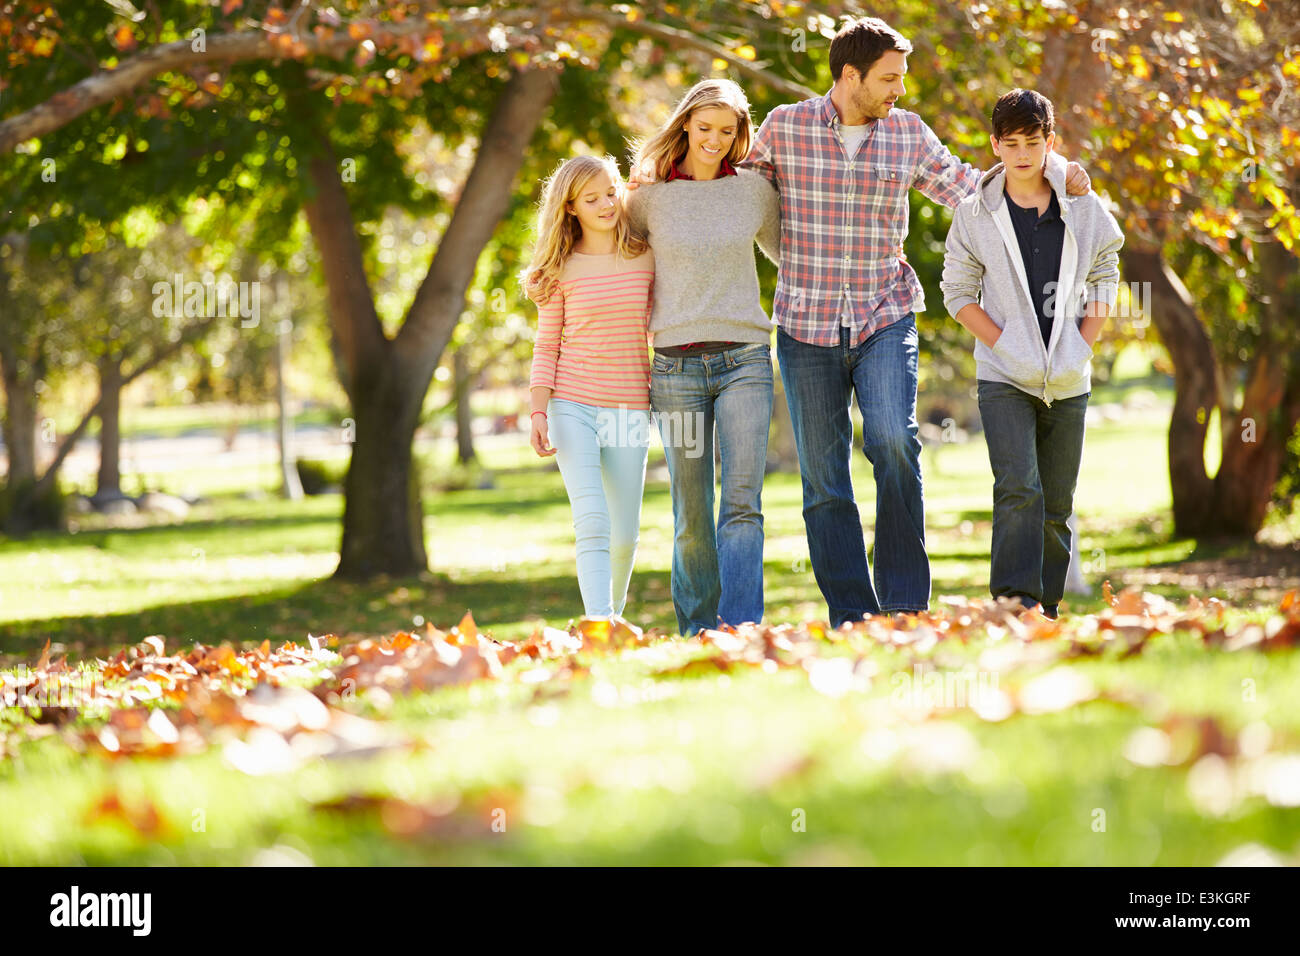 Balades en famille à l'automne de Woodland Photo Stock